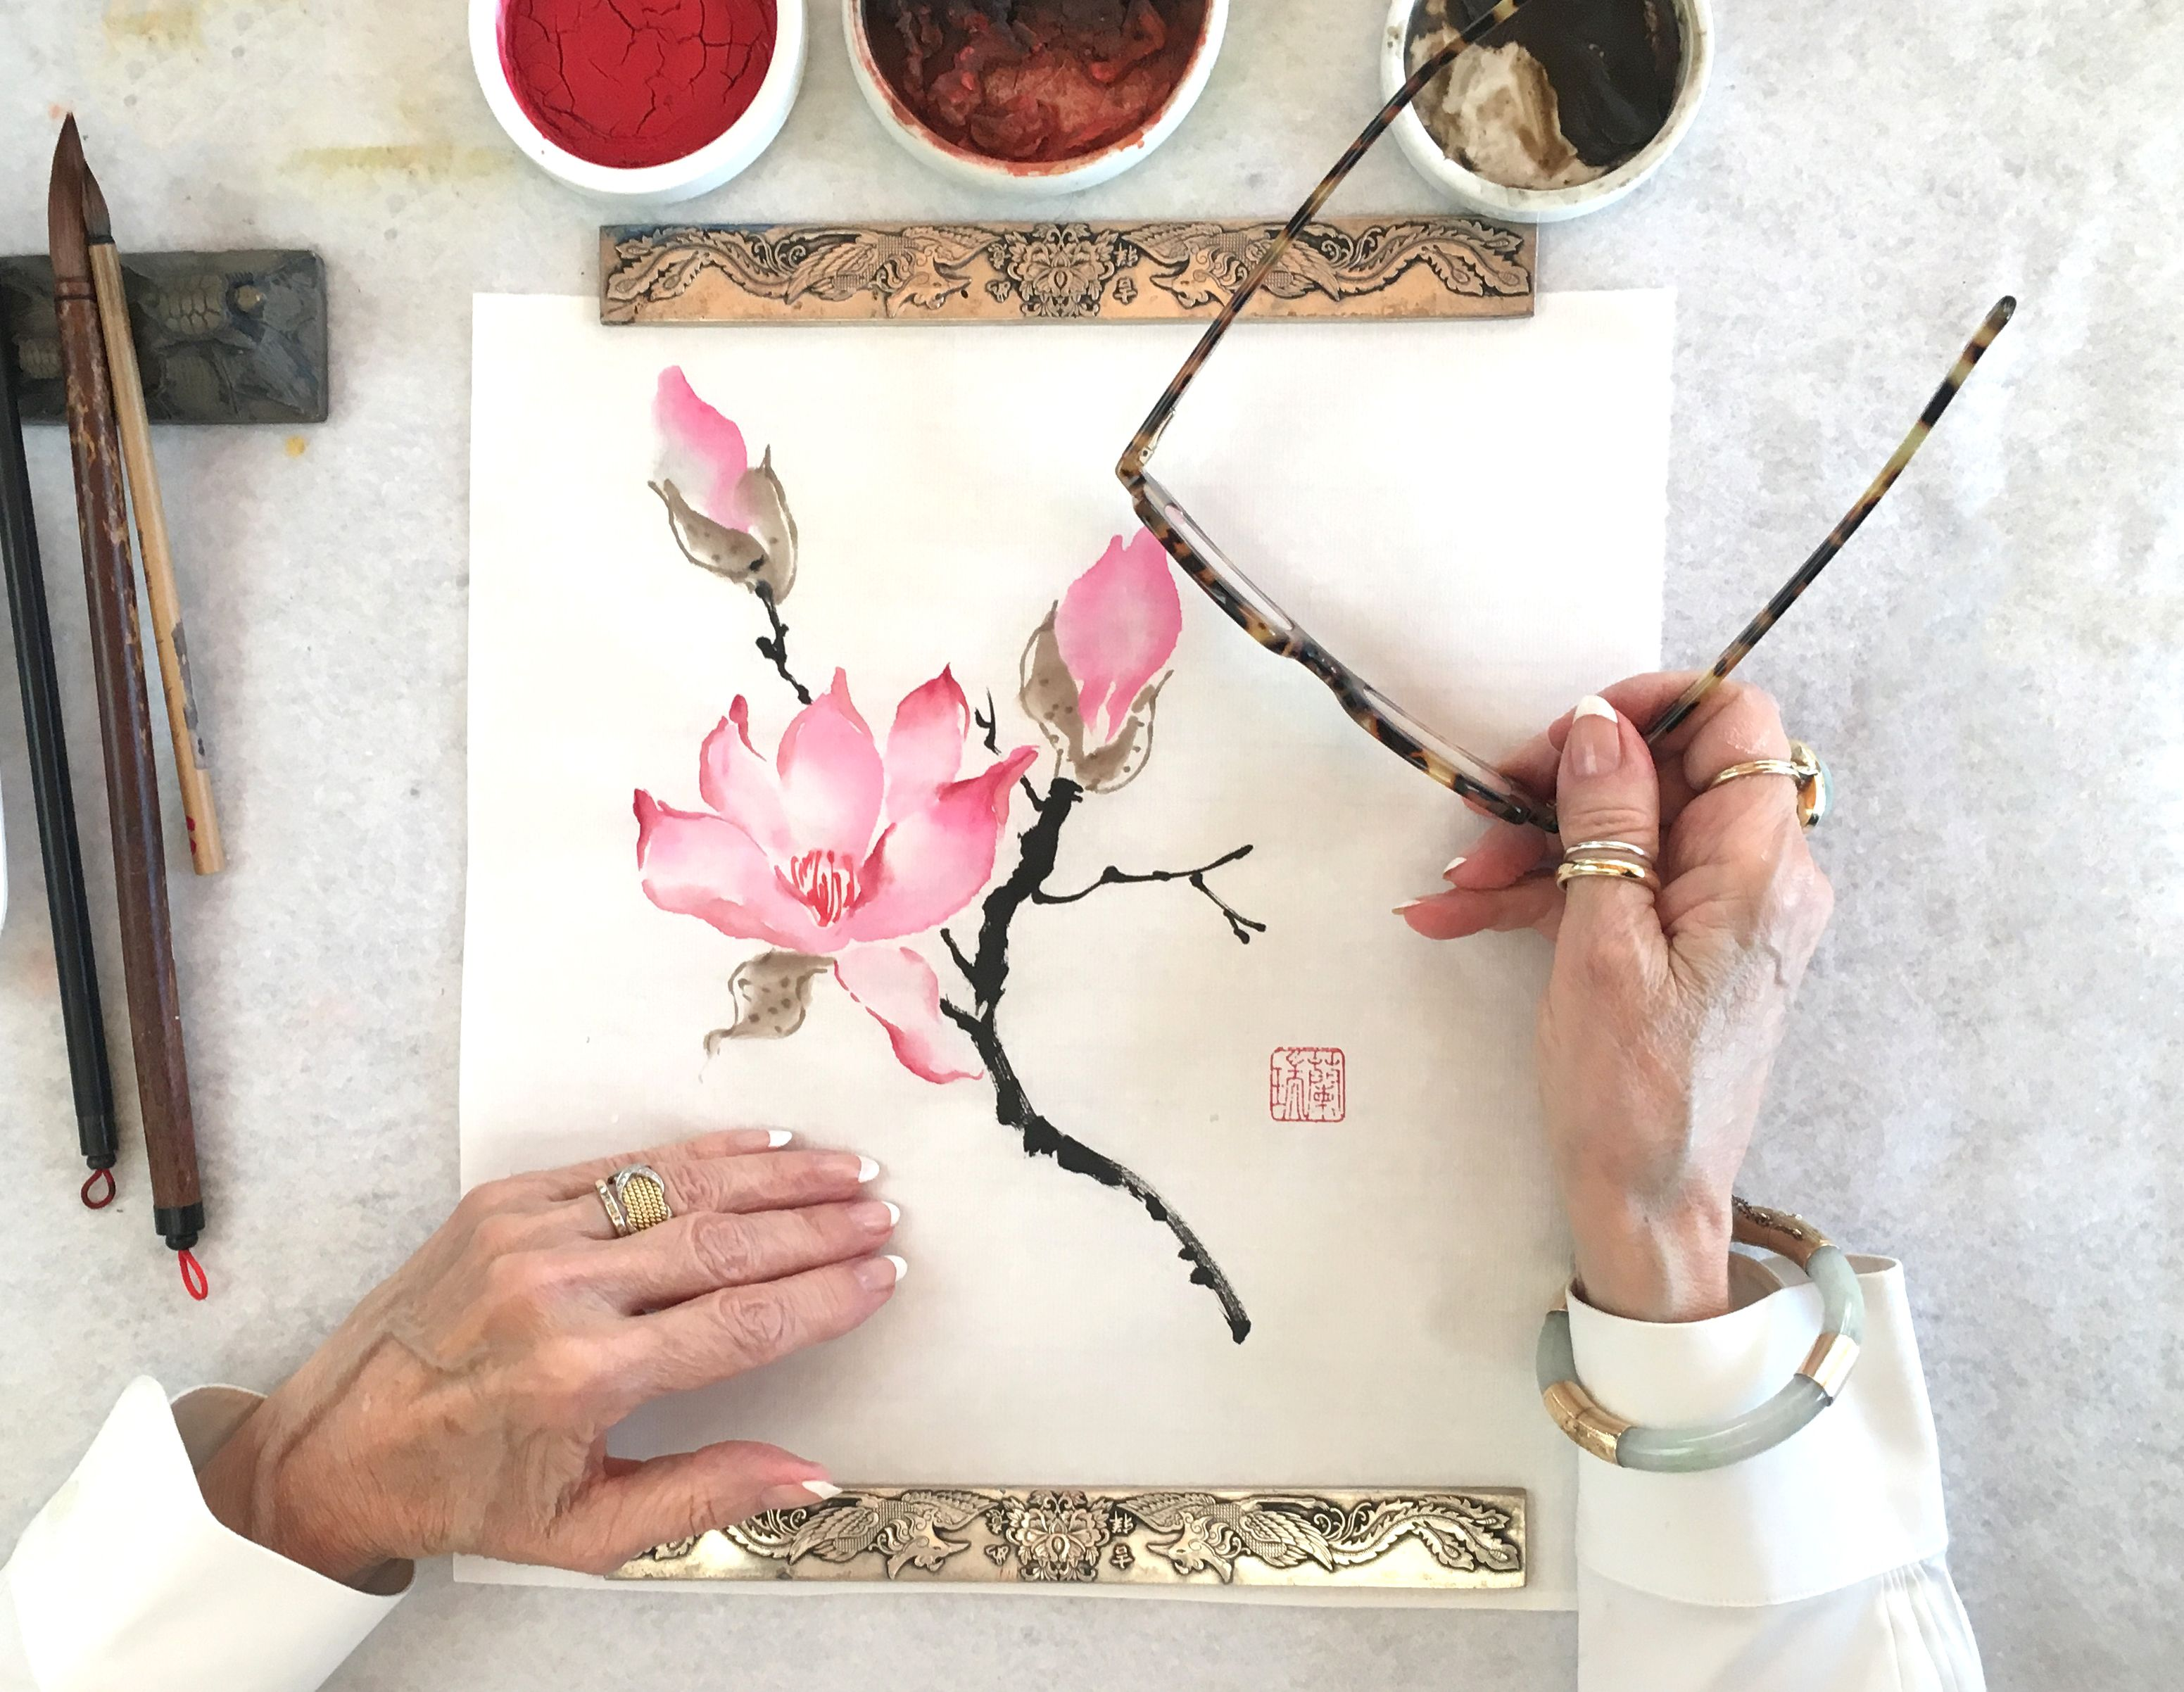 The Chinese Magnolia An Original Brush Painting By Nan Rae Floral Painting Painting Supplies Painting